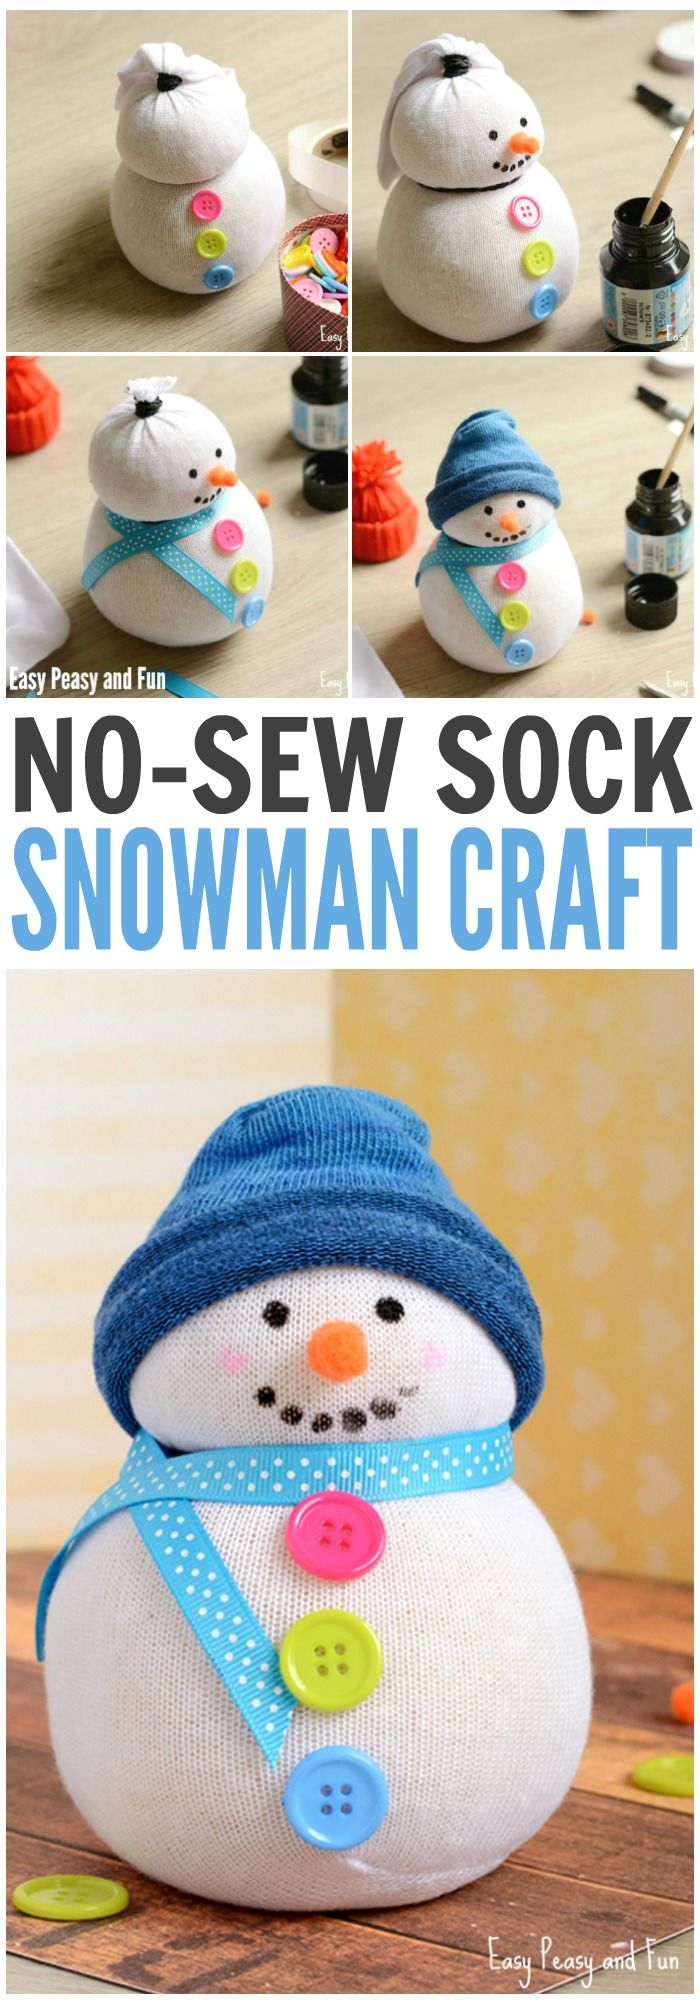 Easy Craft Ideas For Christmas Gifts Part - 48: DIY Sock Snowmen Decorations Diy Crafts Christmas Easy Crafts Diy Ideas  Christmas Ornaments Christmas Crafts Christmas Ideas Christmas Decor Christmas  Diy ...